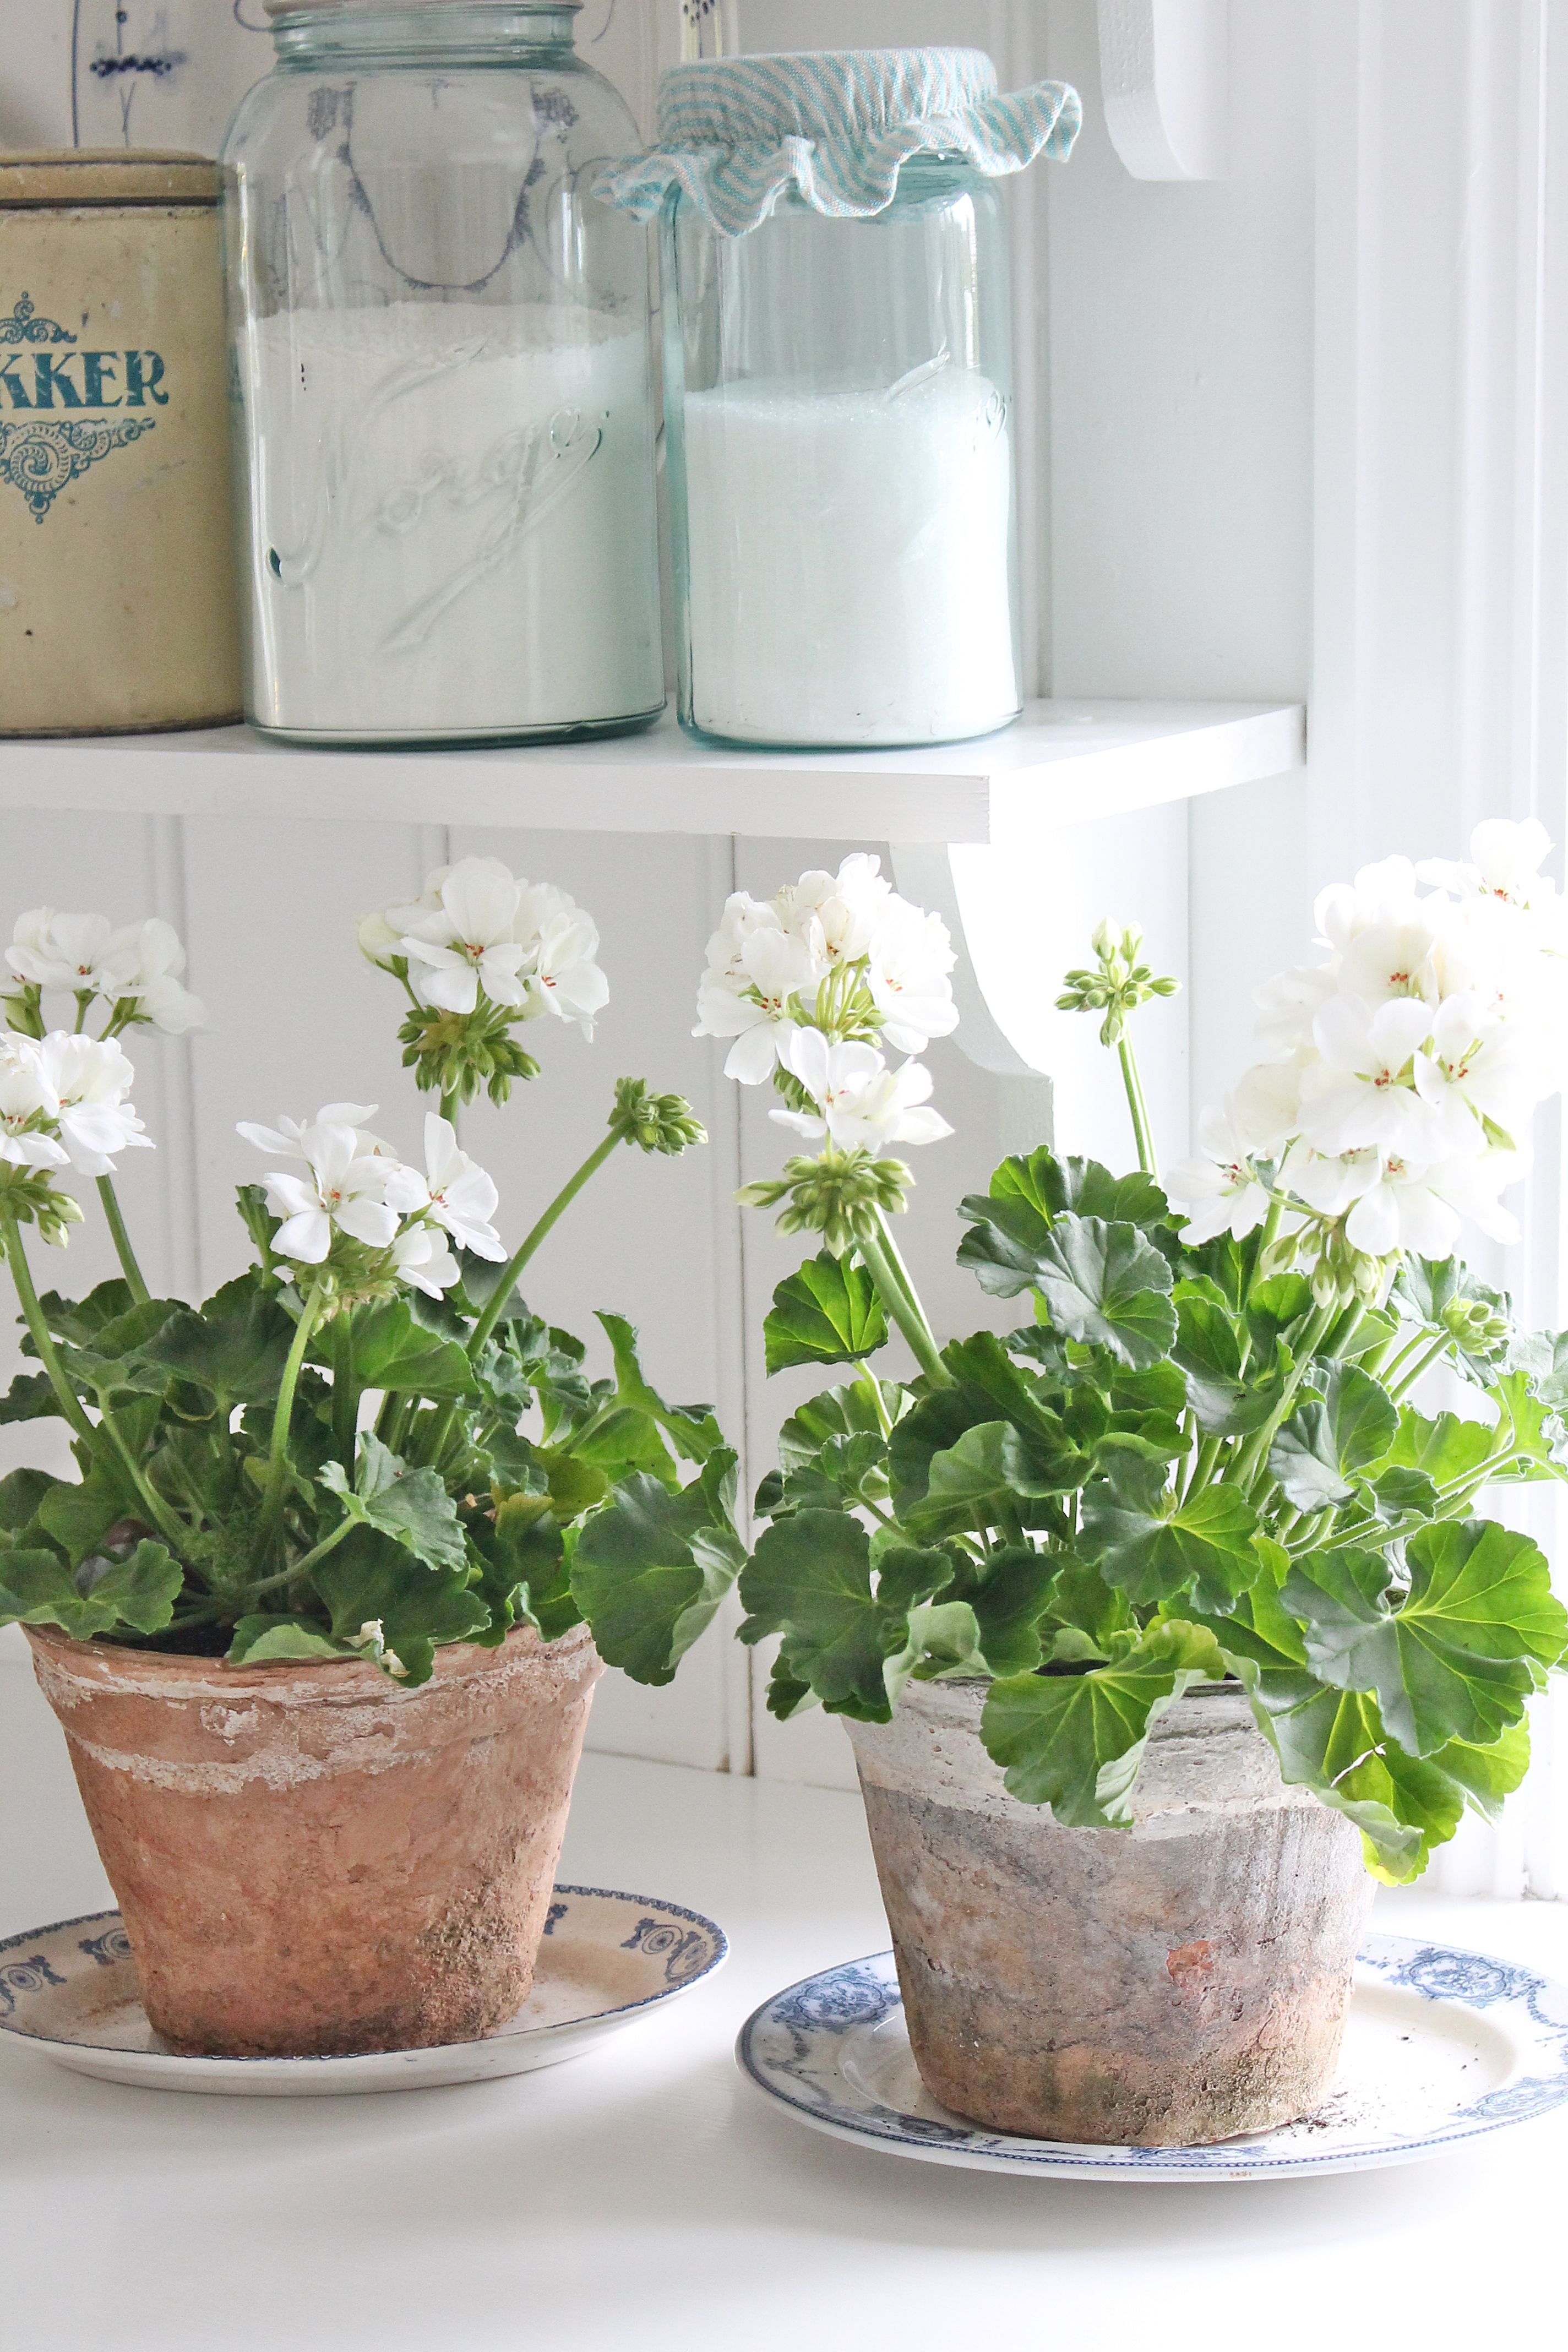 White Geraniums Are One Of My Favorite Plants And Make Great